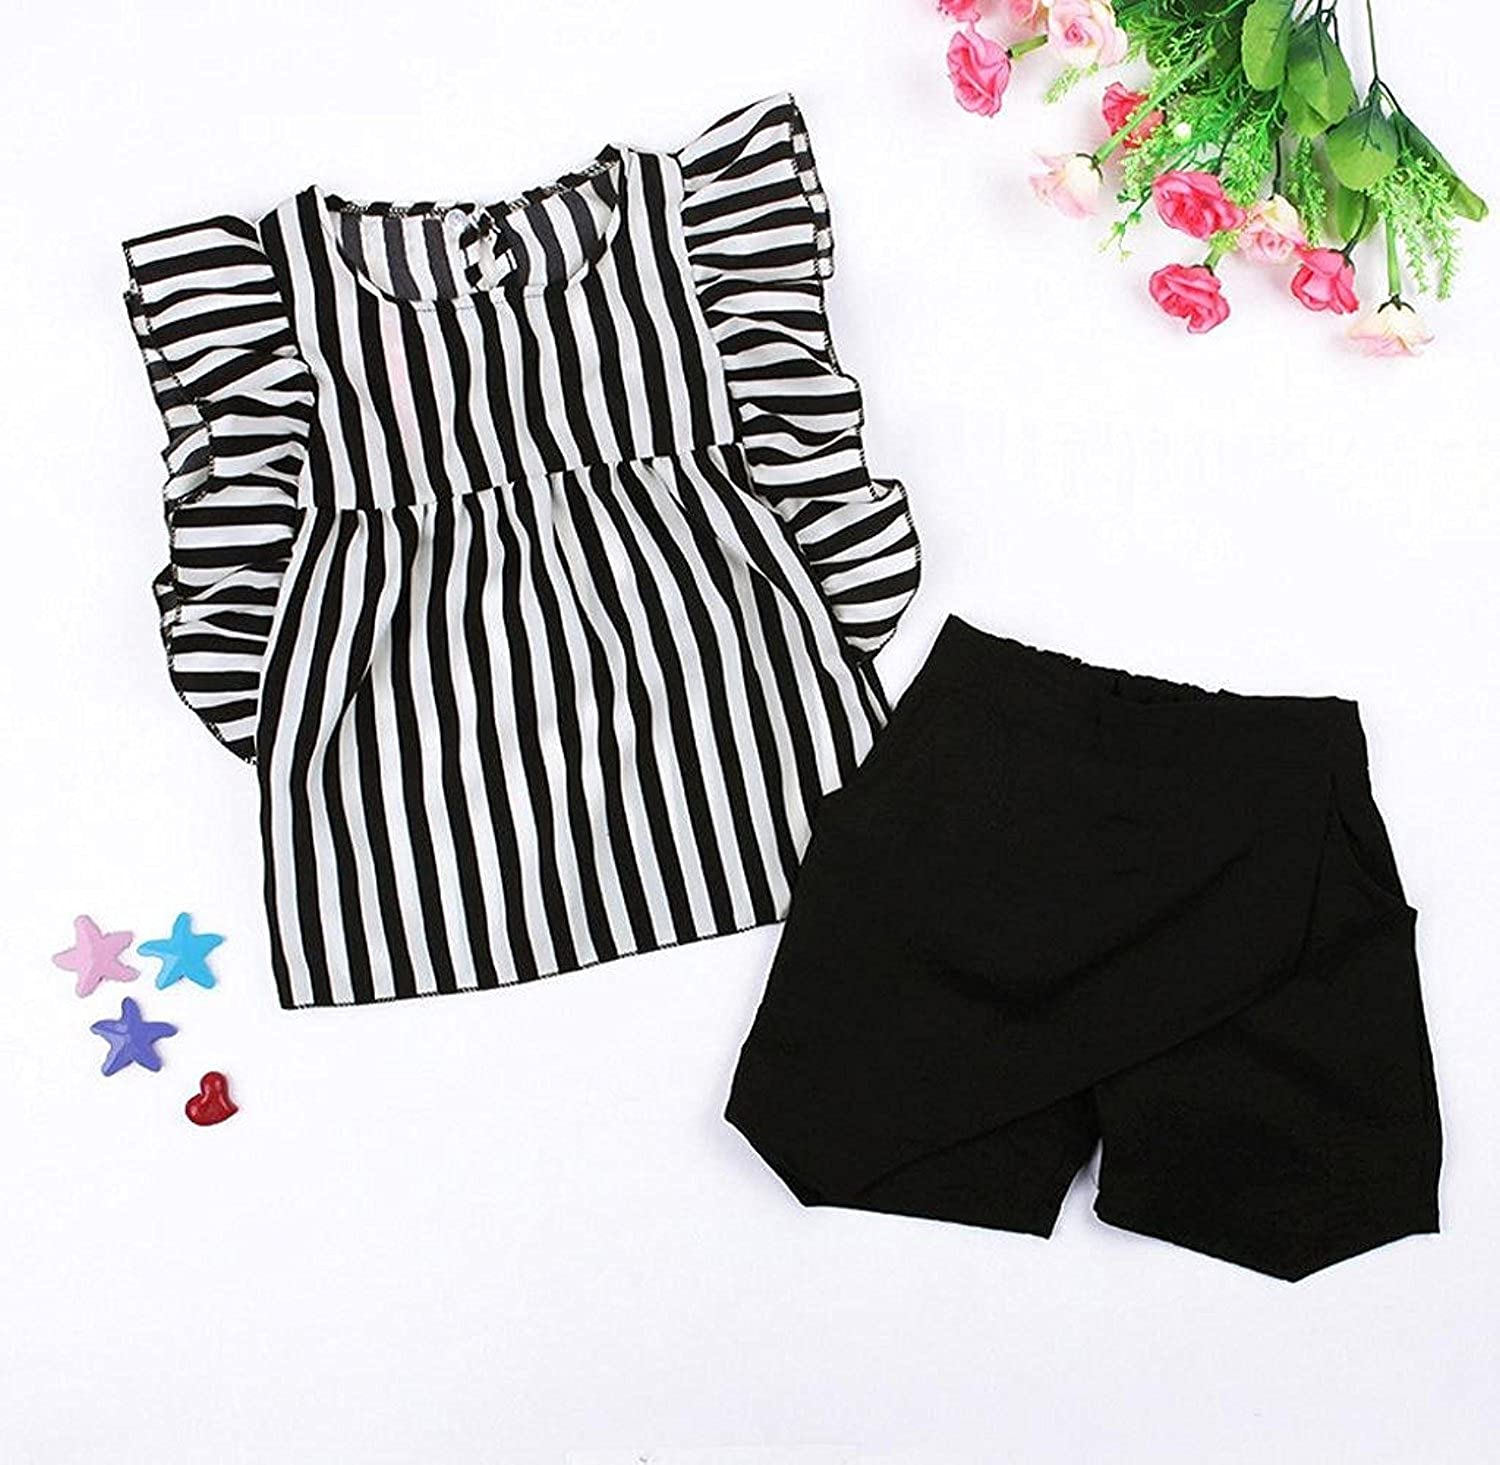 Malloom/® Baby Outfit Set Toddler Kids Baby Girls Clothes Striped T-Shirt Tops+Shorts Pants